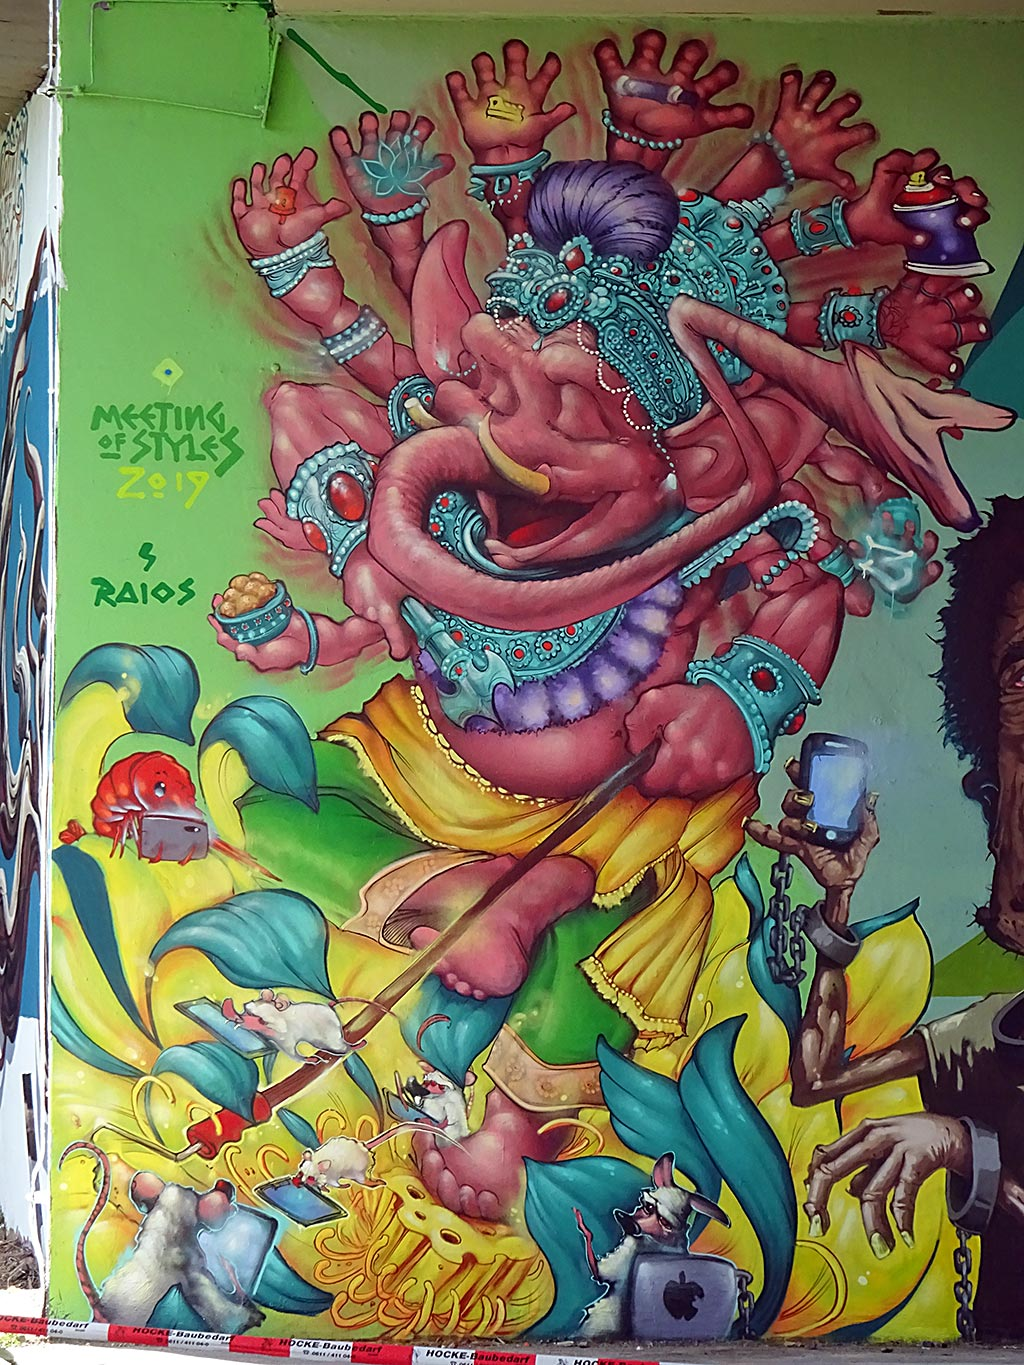 Meeting of Styles 2019 in Wiesbaden - Graffiti by Raios